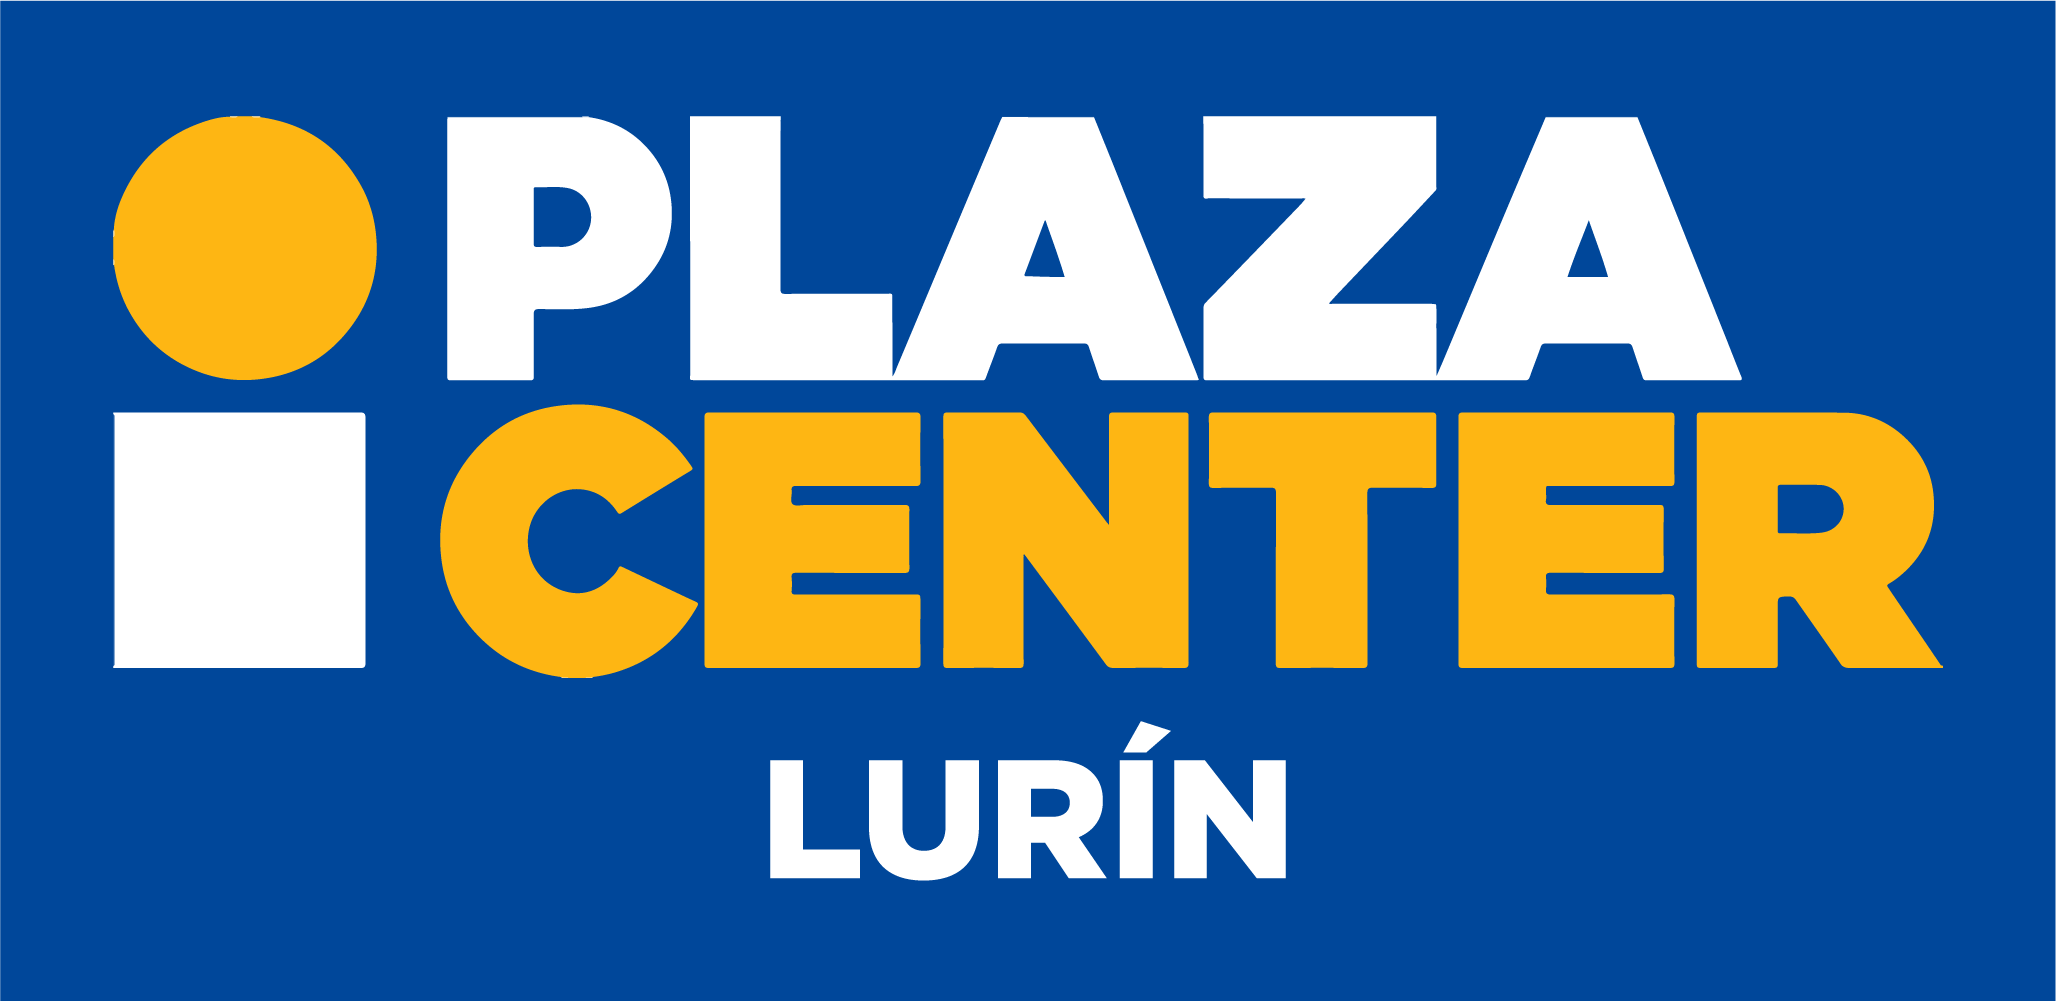 Plaza Center Lurín